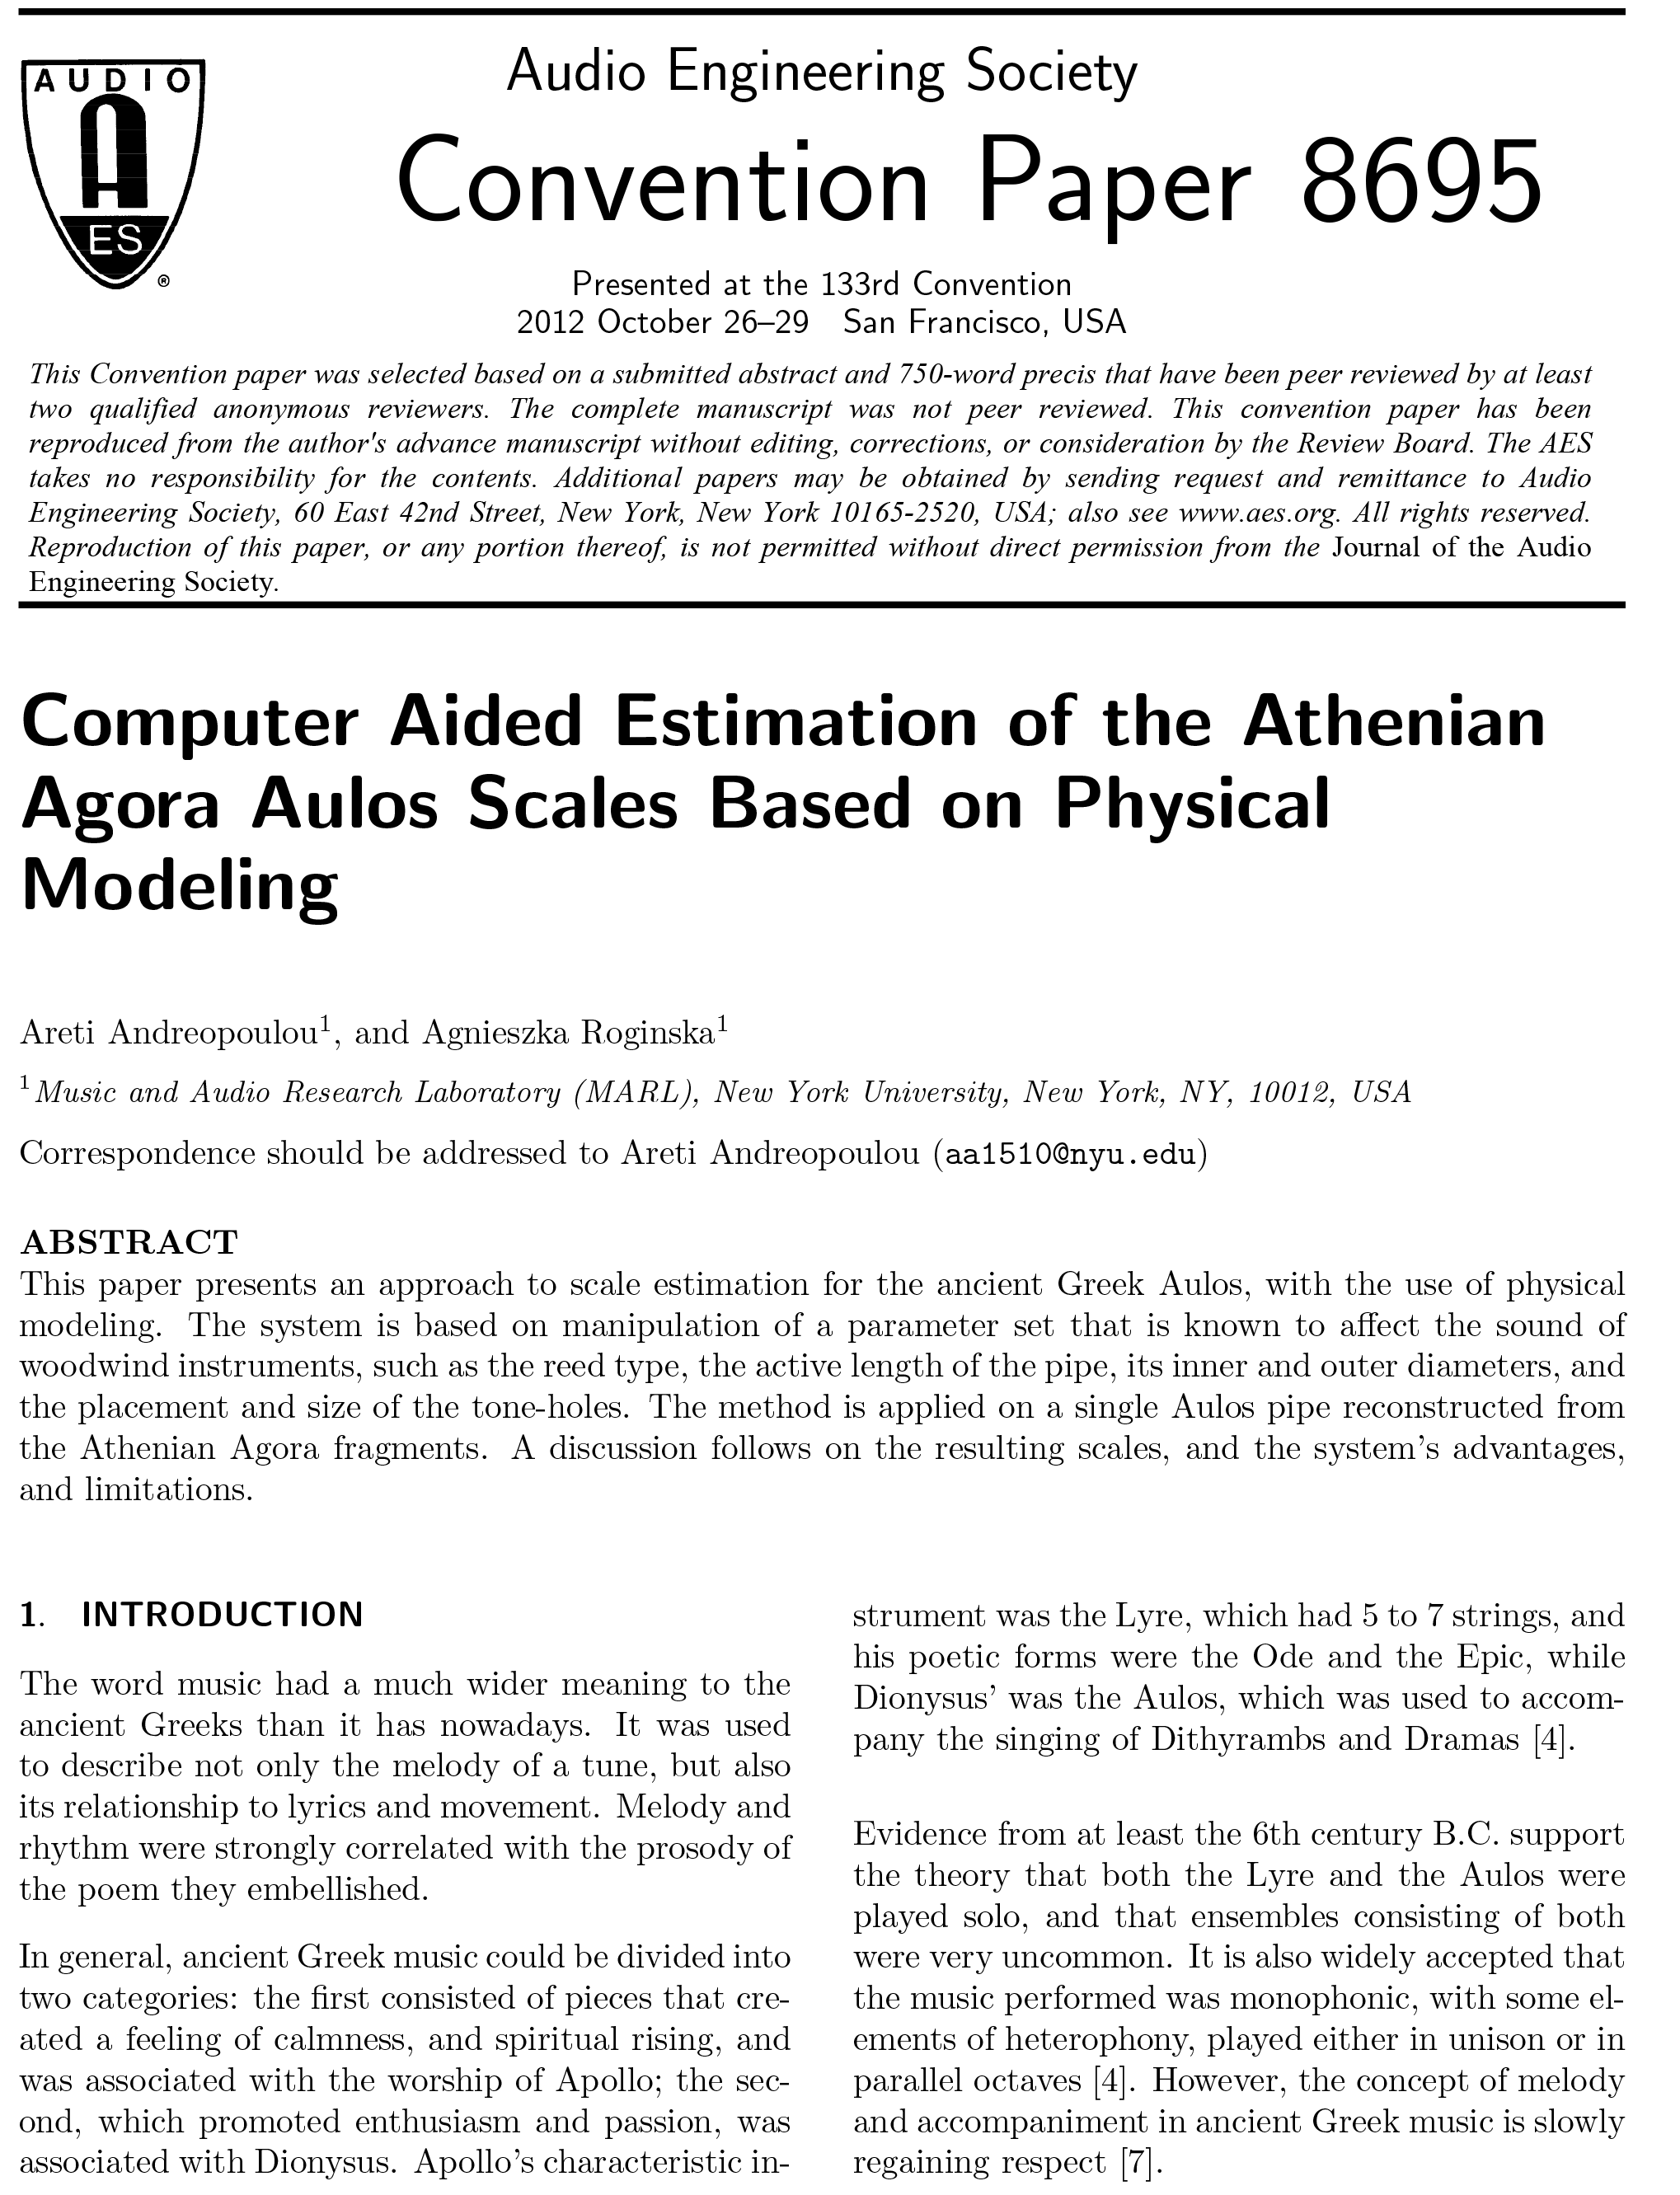 AES E-Library » Computer-Aided Estimation of the Athenian Agora